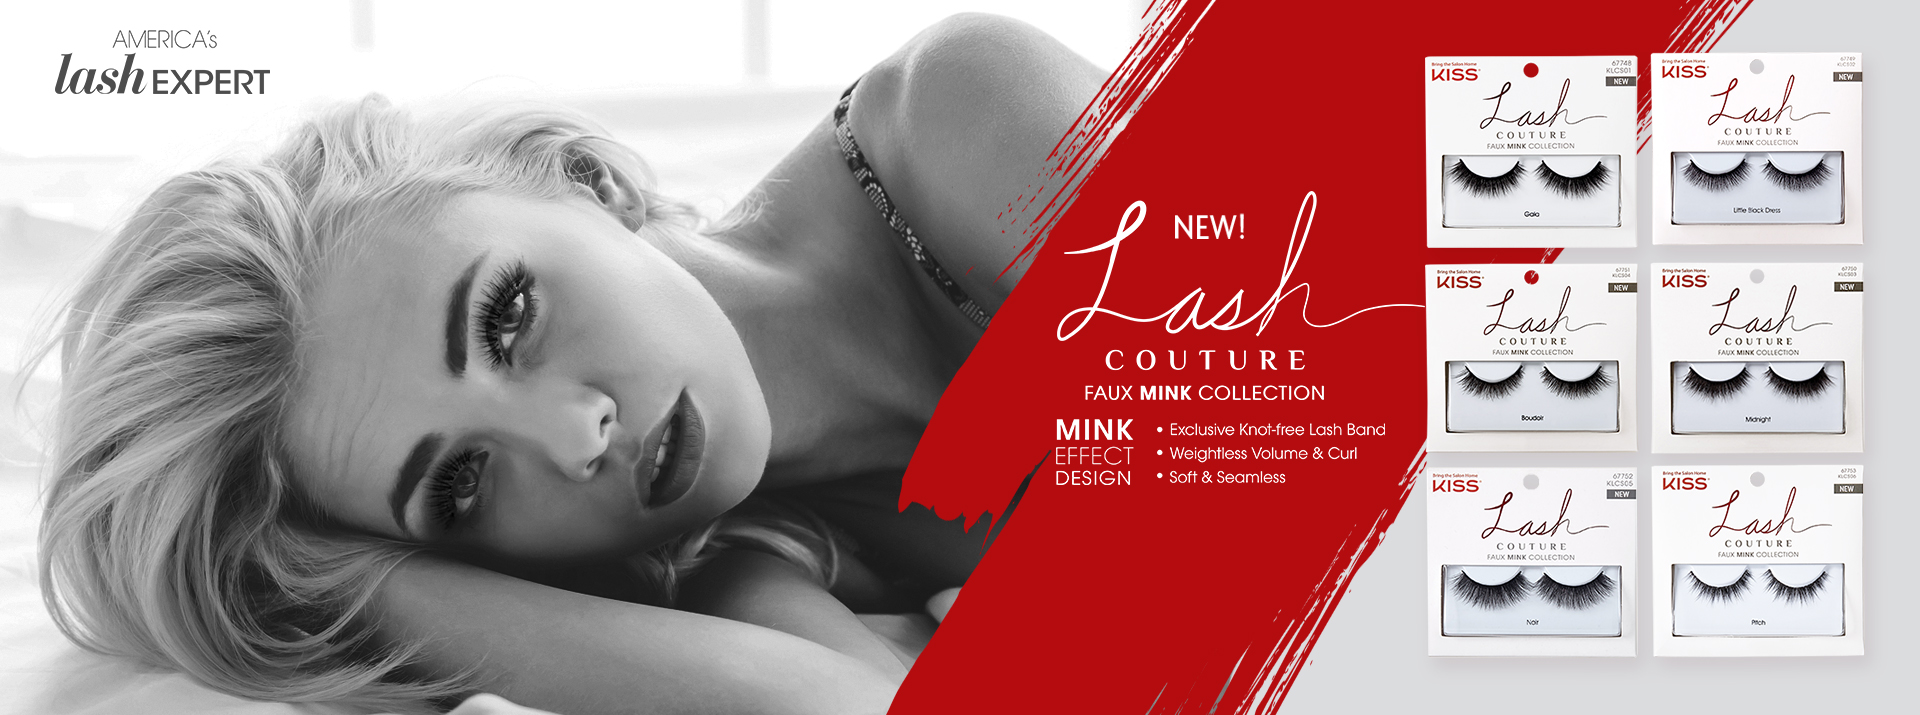 Kiss Lash Couture Faux Mink Collectio